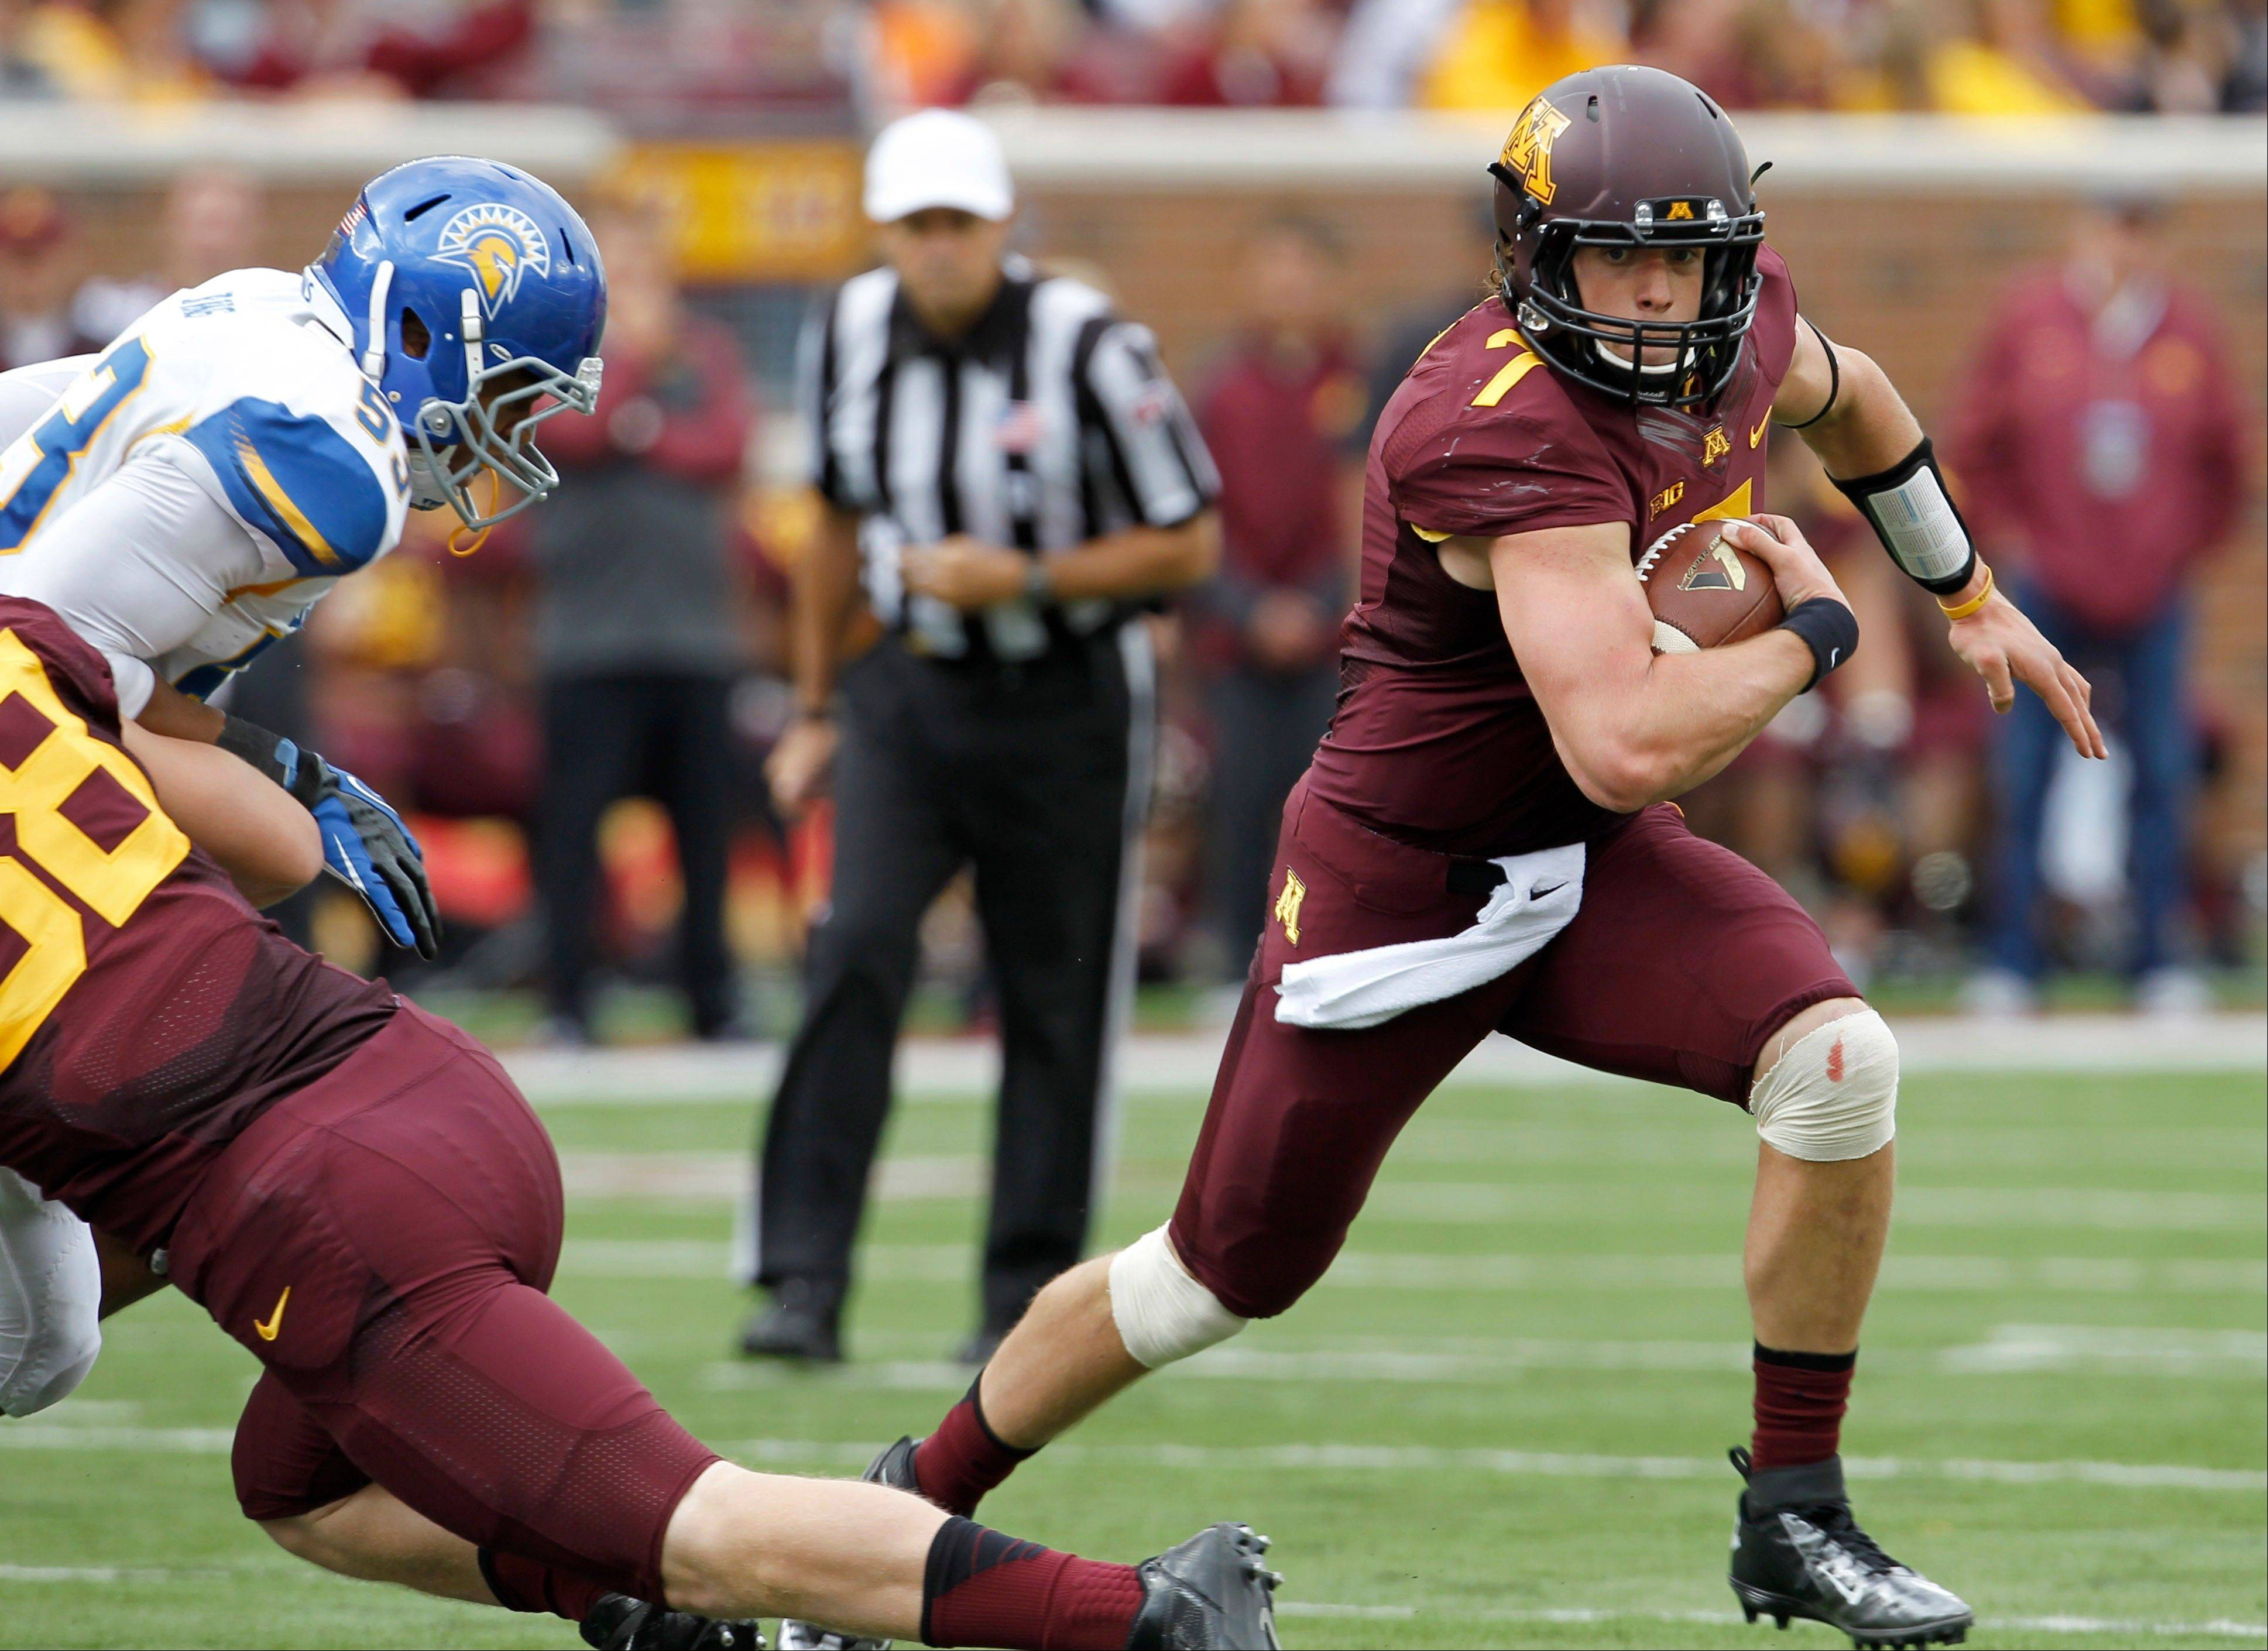 Minnesota quarterback Mitch Leidner, right, carries the ball for a 15-yard gain during the first quarter of the game against San Jose State in Minneapolis Saturday.